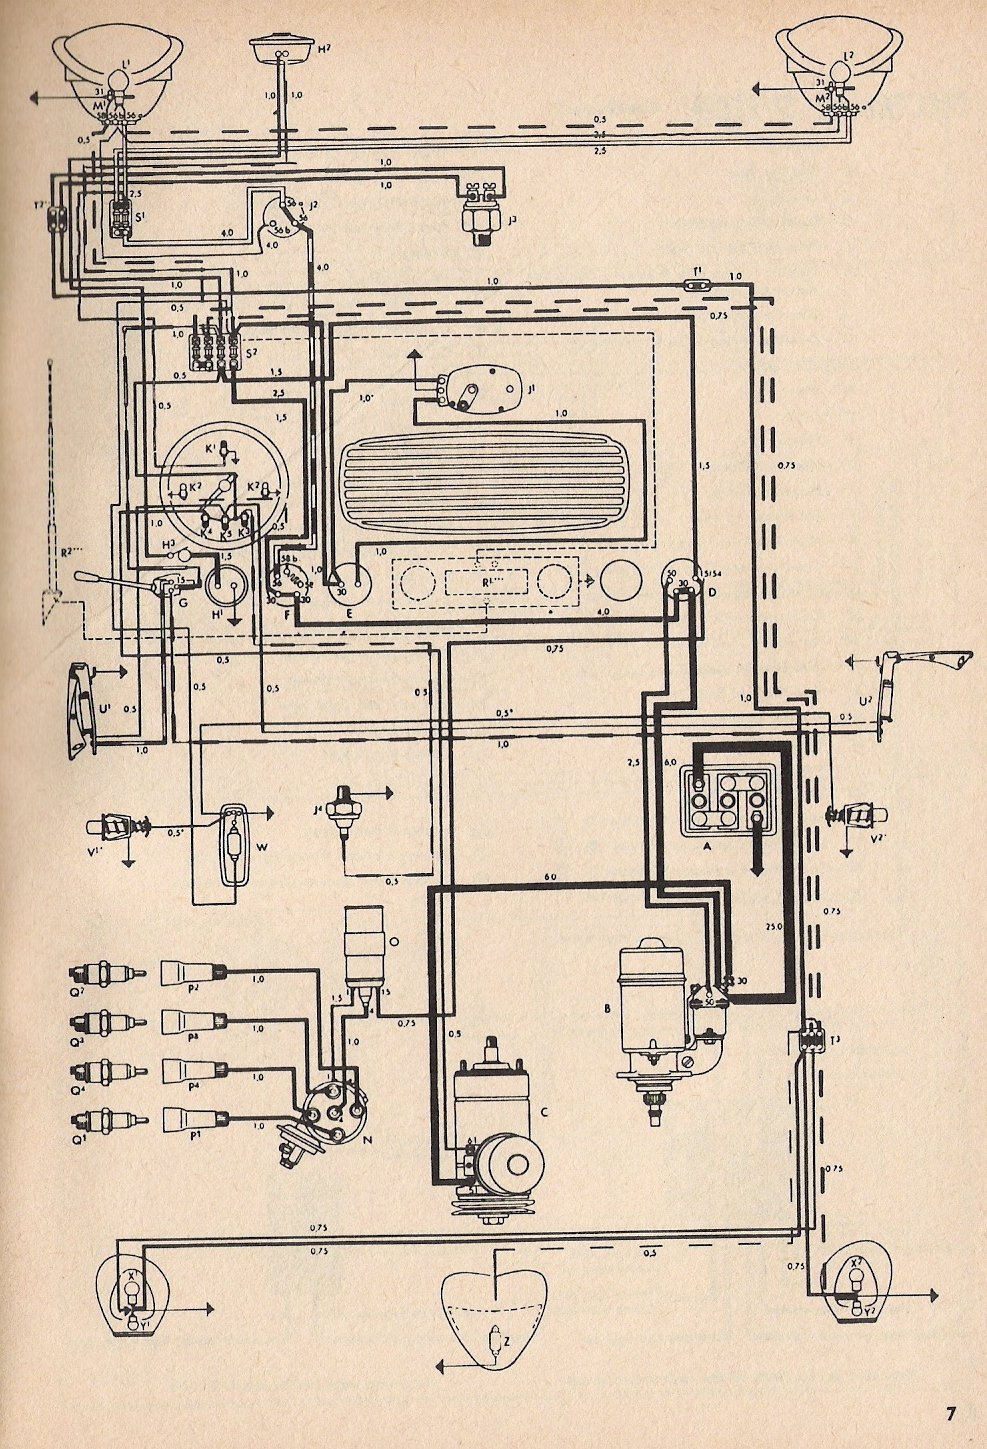 bug_54 thesamba com type 1 wiring diagrams 1971 vw bus wiring diagram at nearapp.co